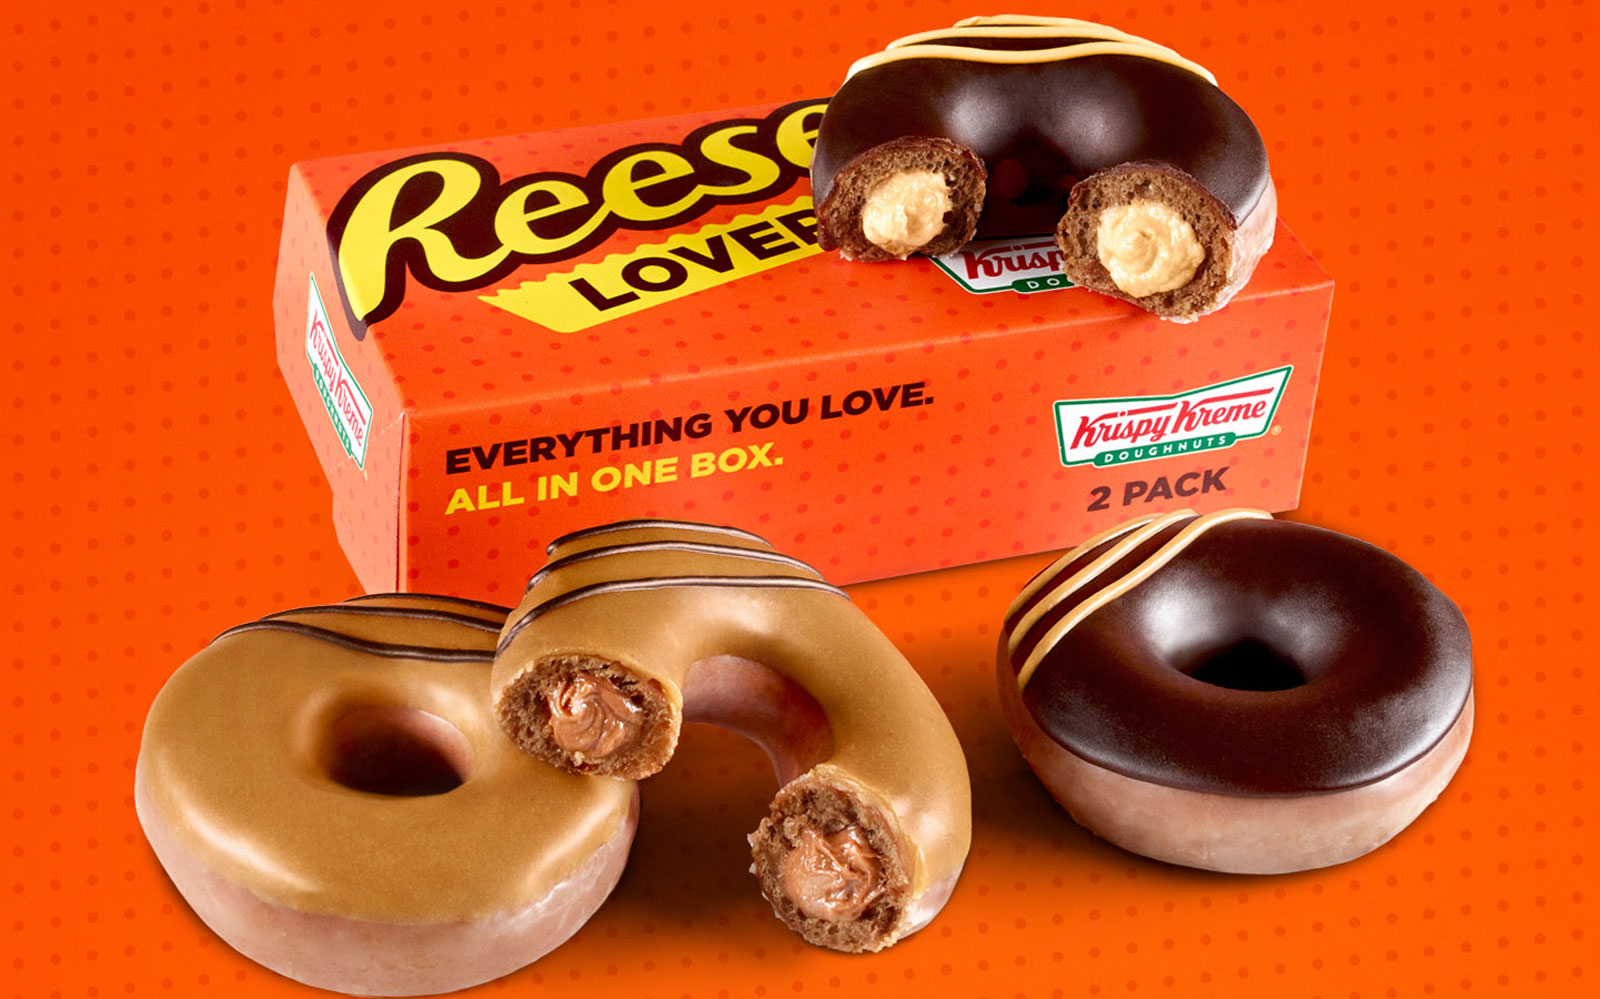 Krispy Kreme Teamed Up With Reese's to Bring You Peanut Butter Kreme-filled Doughnuts